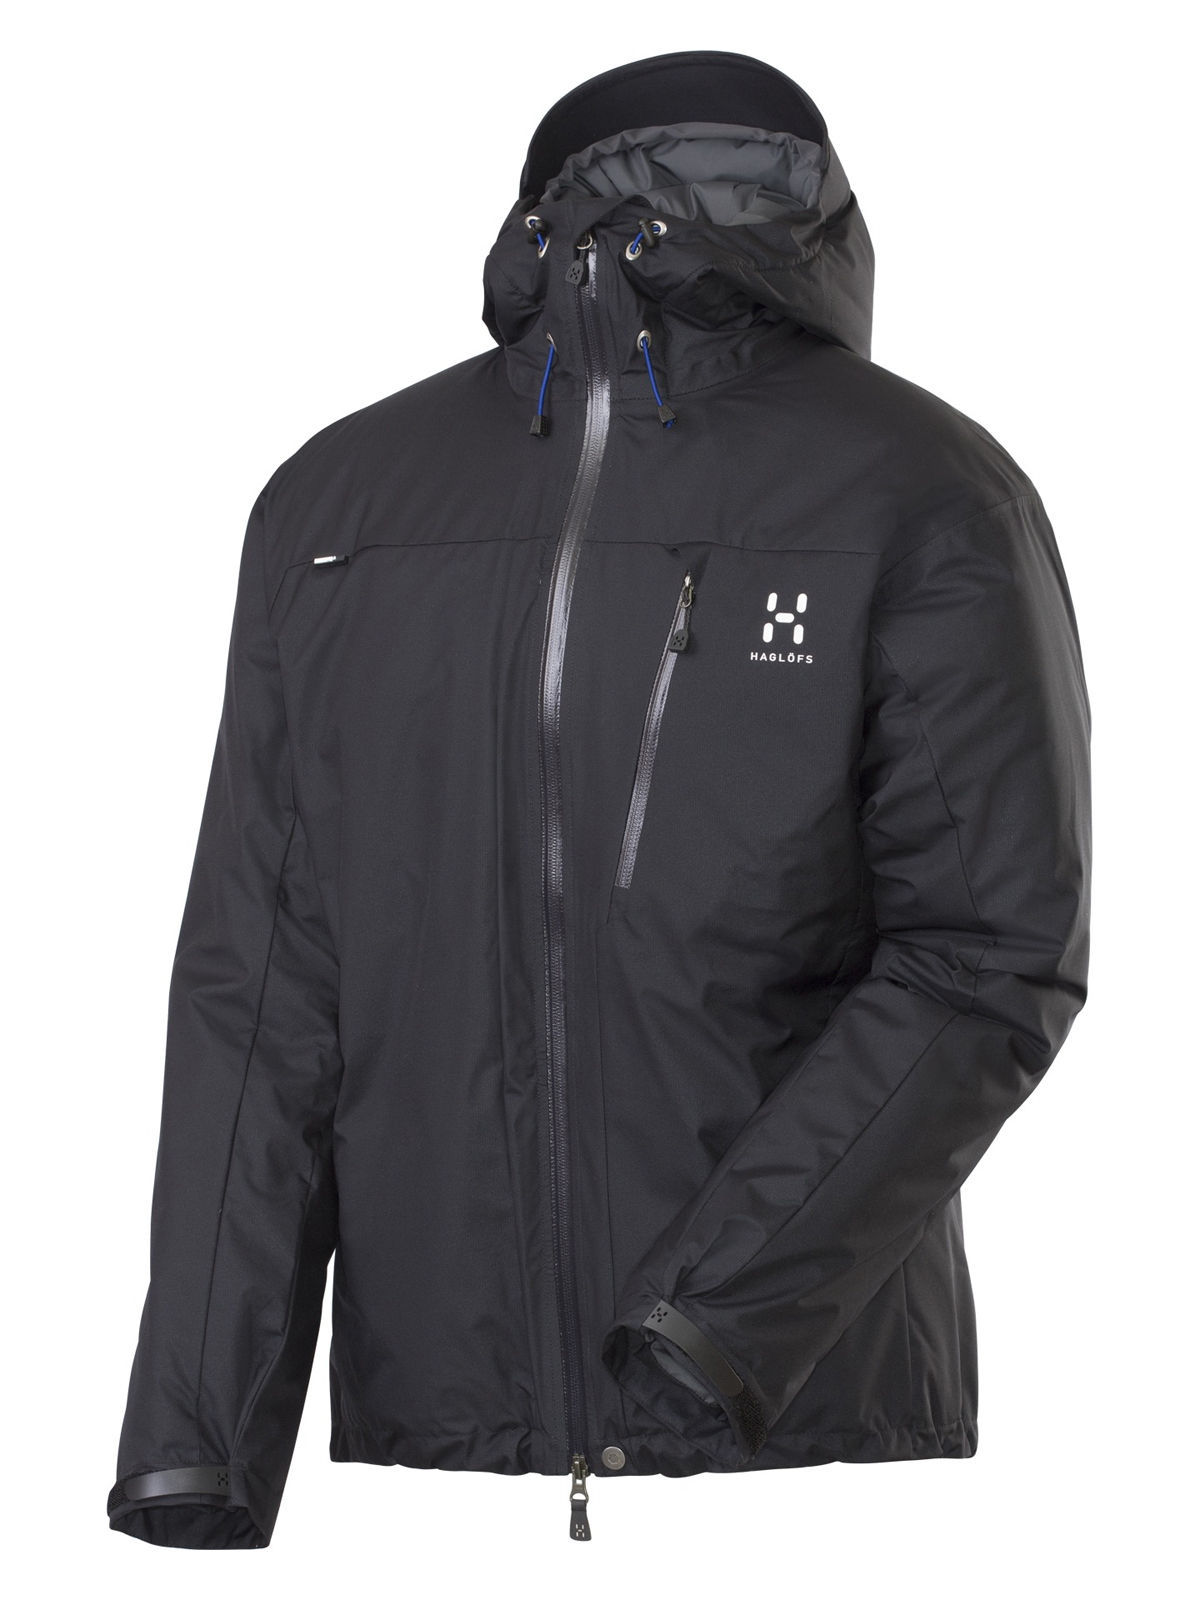 Haglofs Qanir Jacket True Black-30